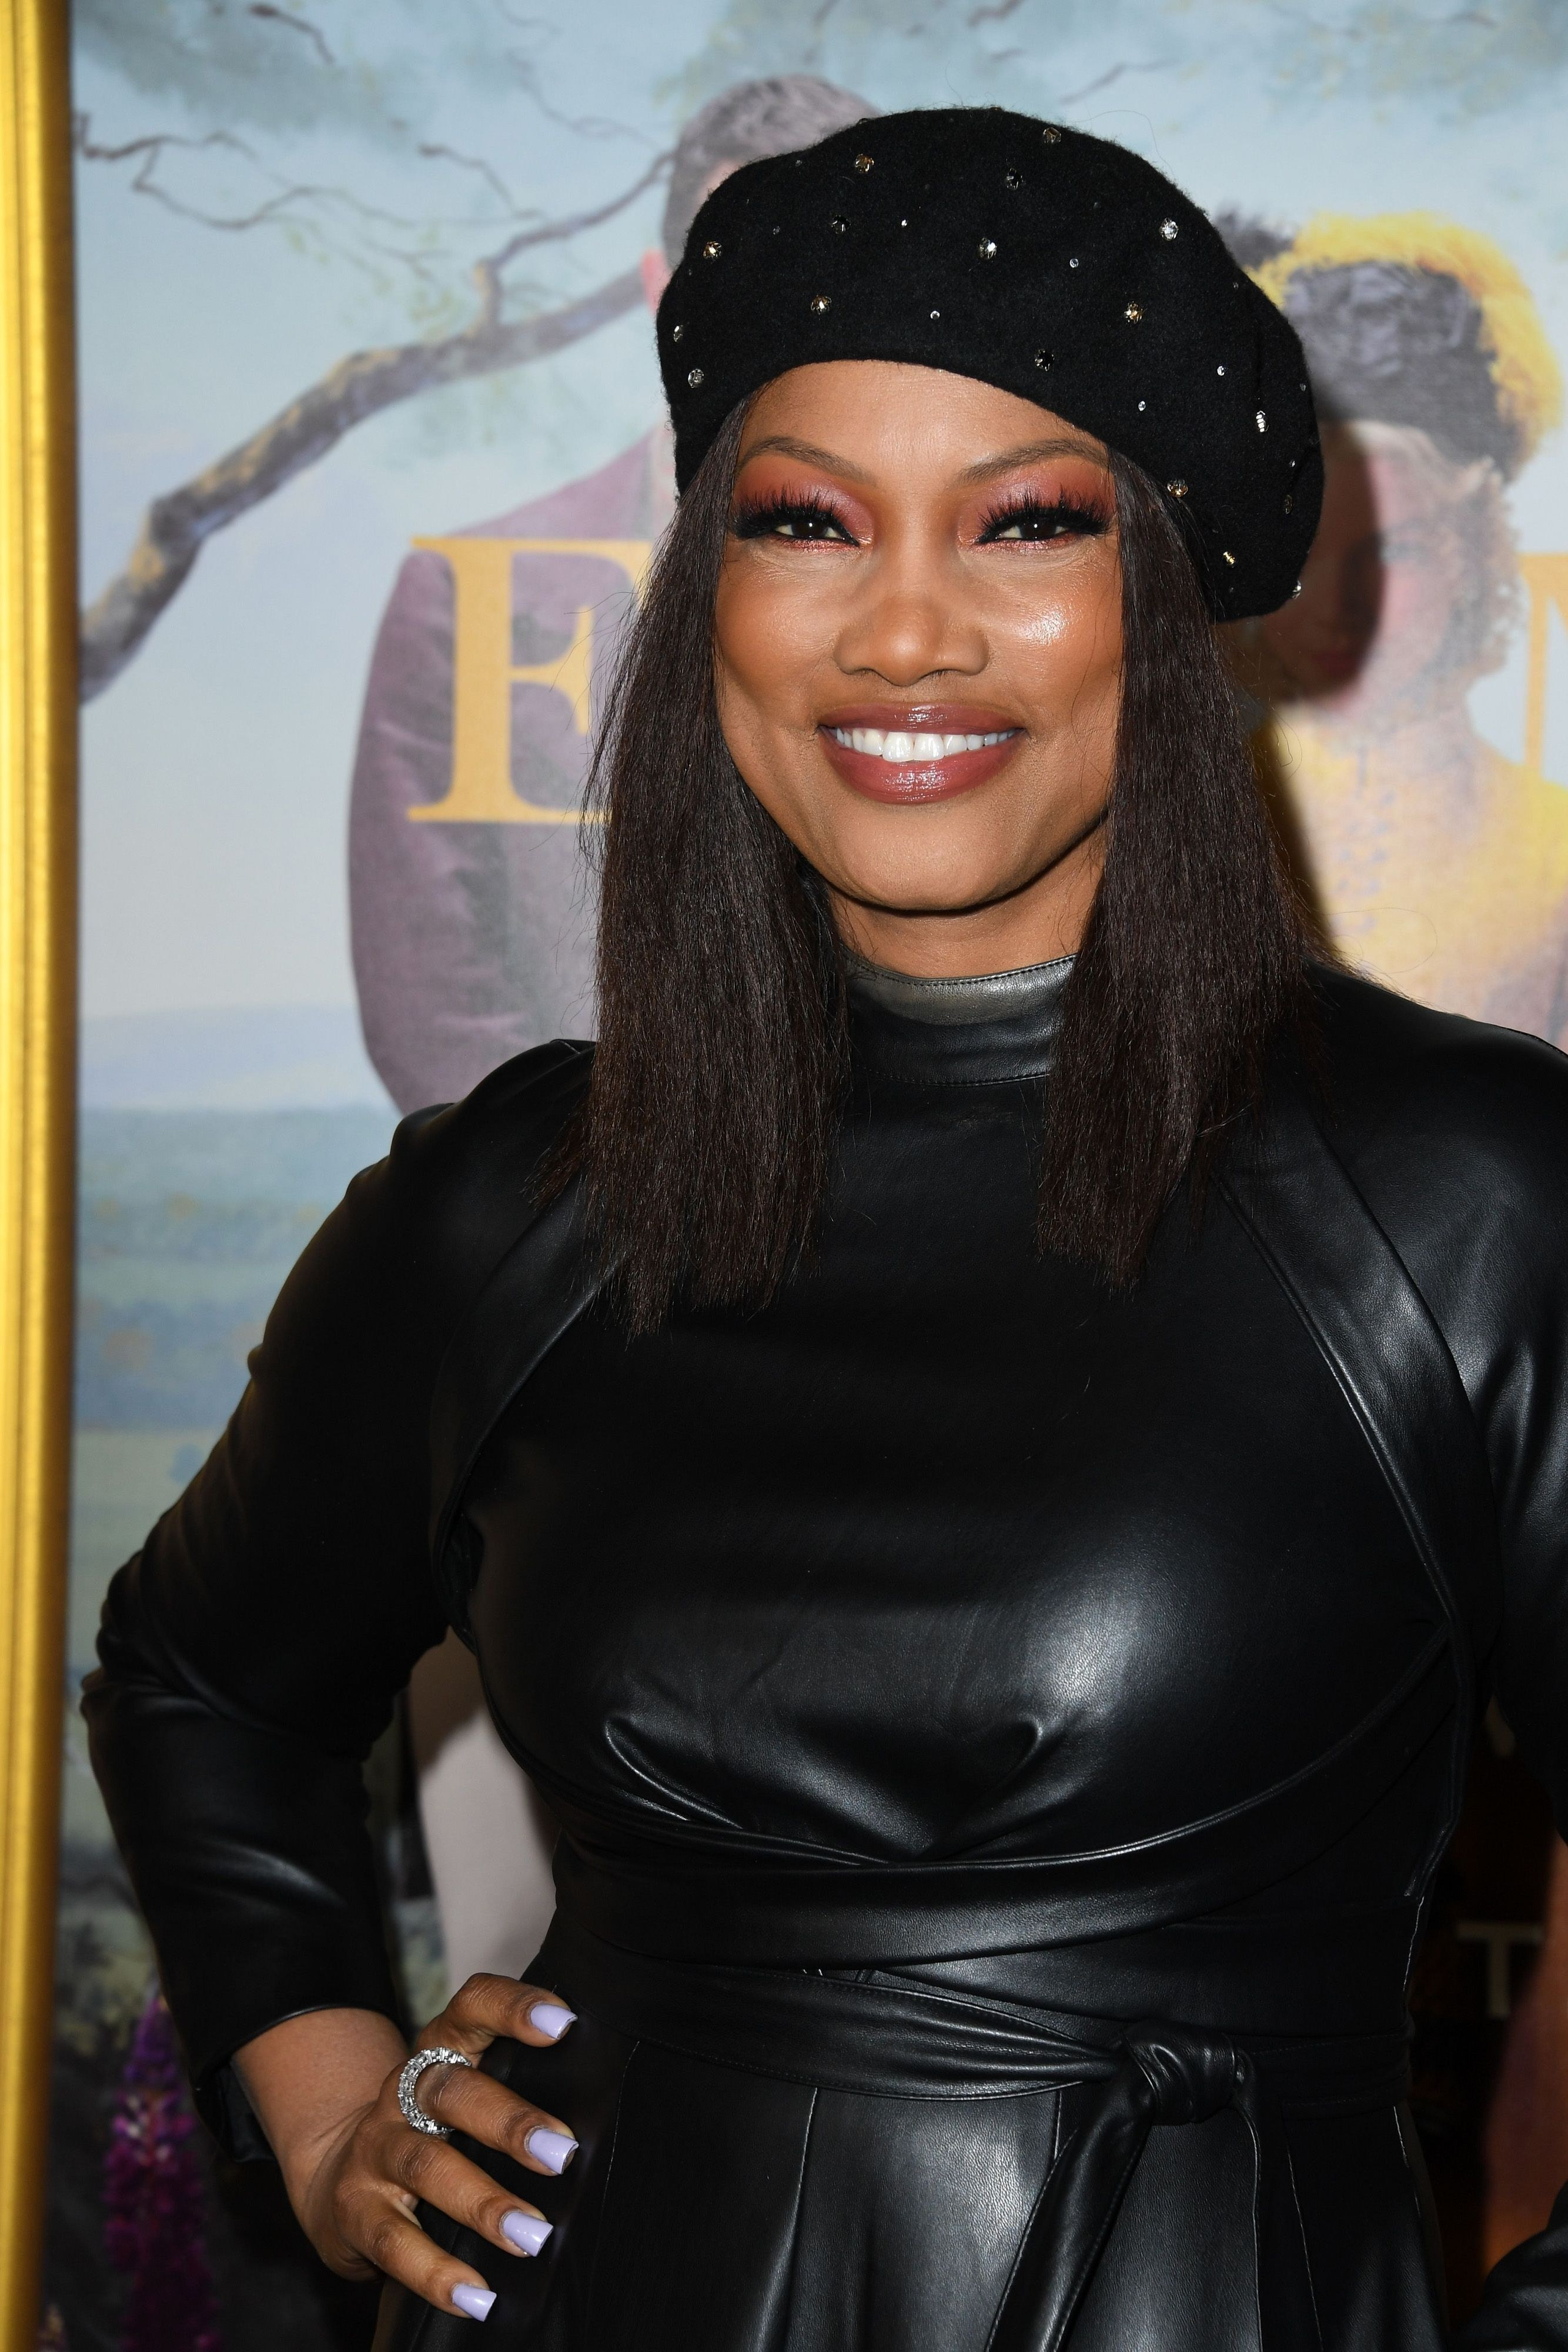 Garcelle posing with her hand on her hip wearing a dark leather outfit